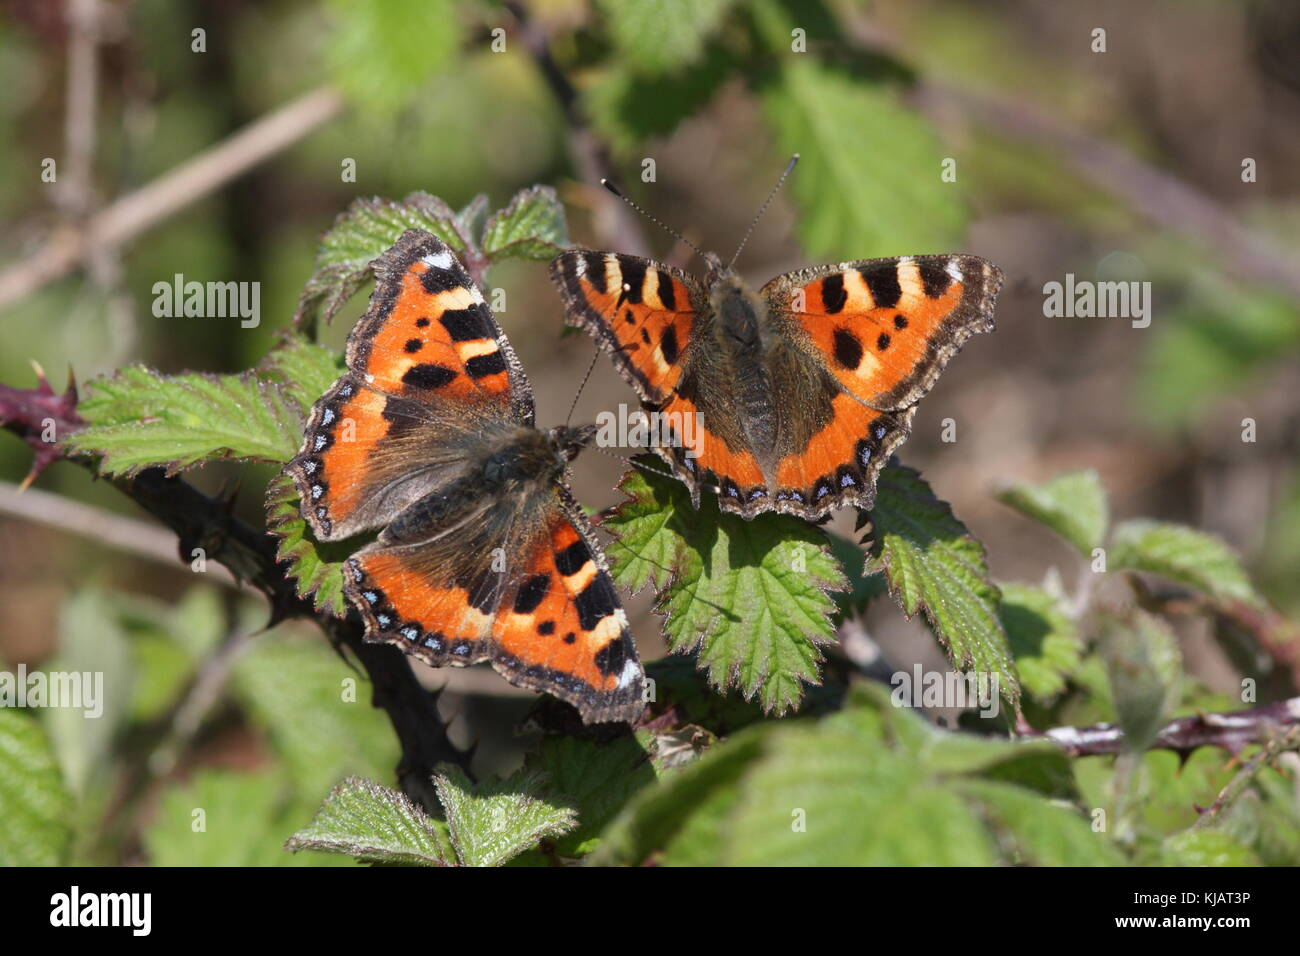 Two Small Tortoiseshel Butterflies on Bramble leaves, with their wings open, the latin name is Aglais urticae Stock Photo